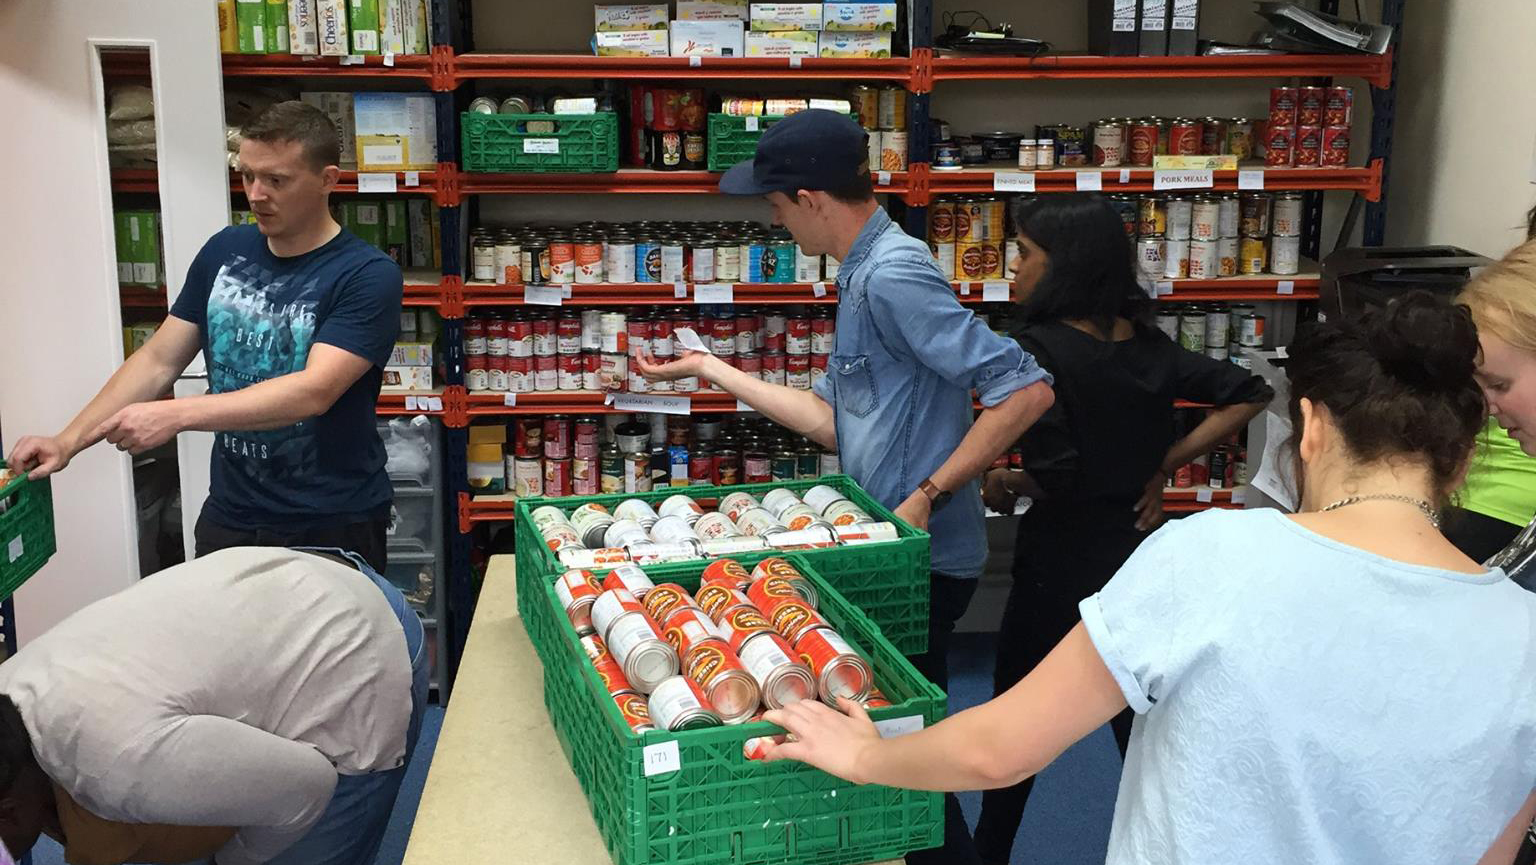 People distributing cans of food stacked on shelves in a storeroom.